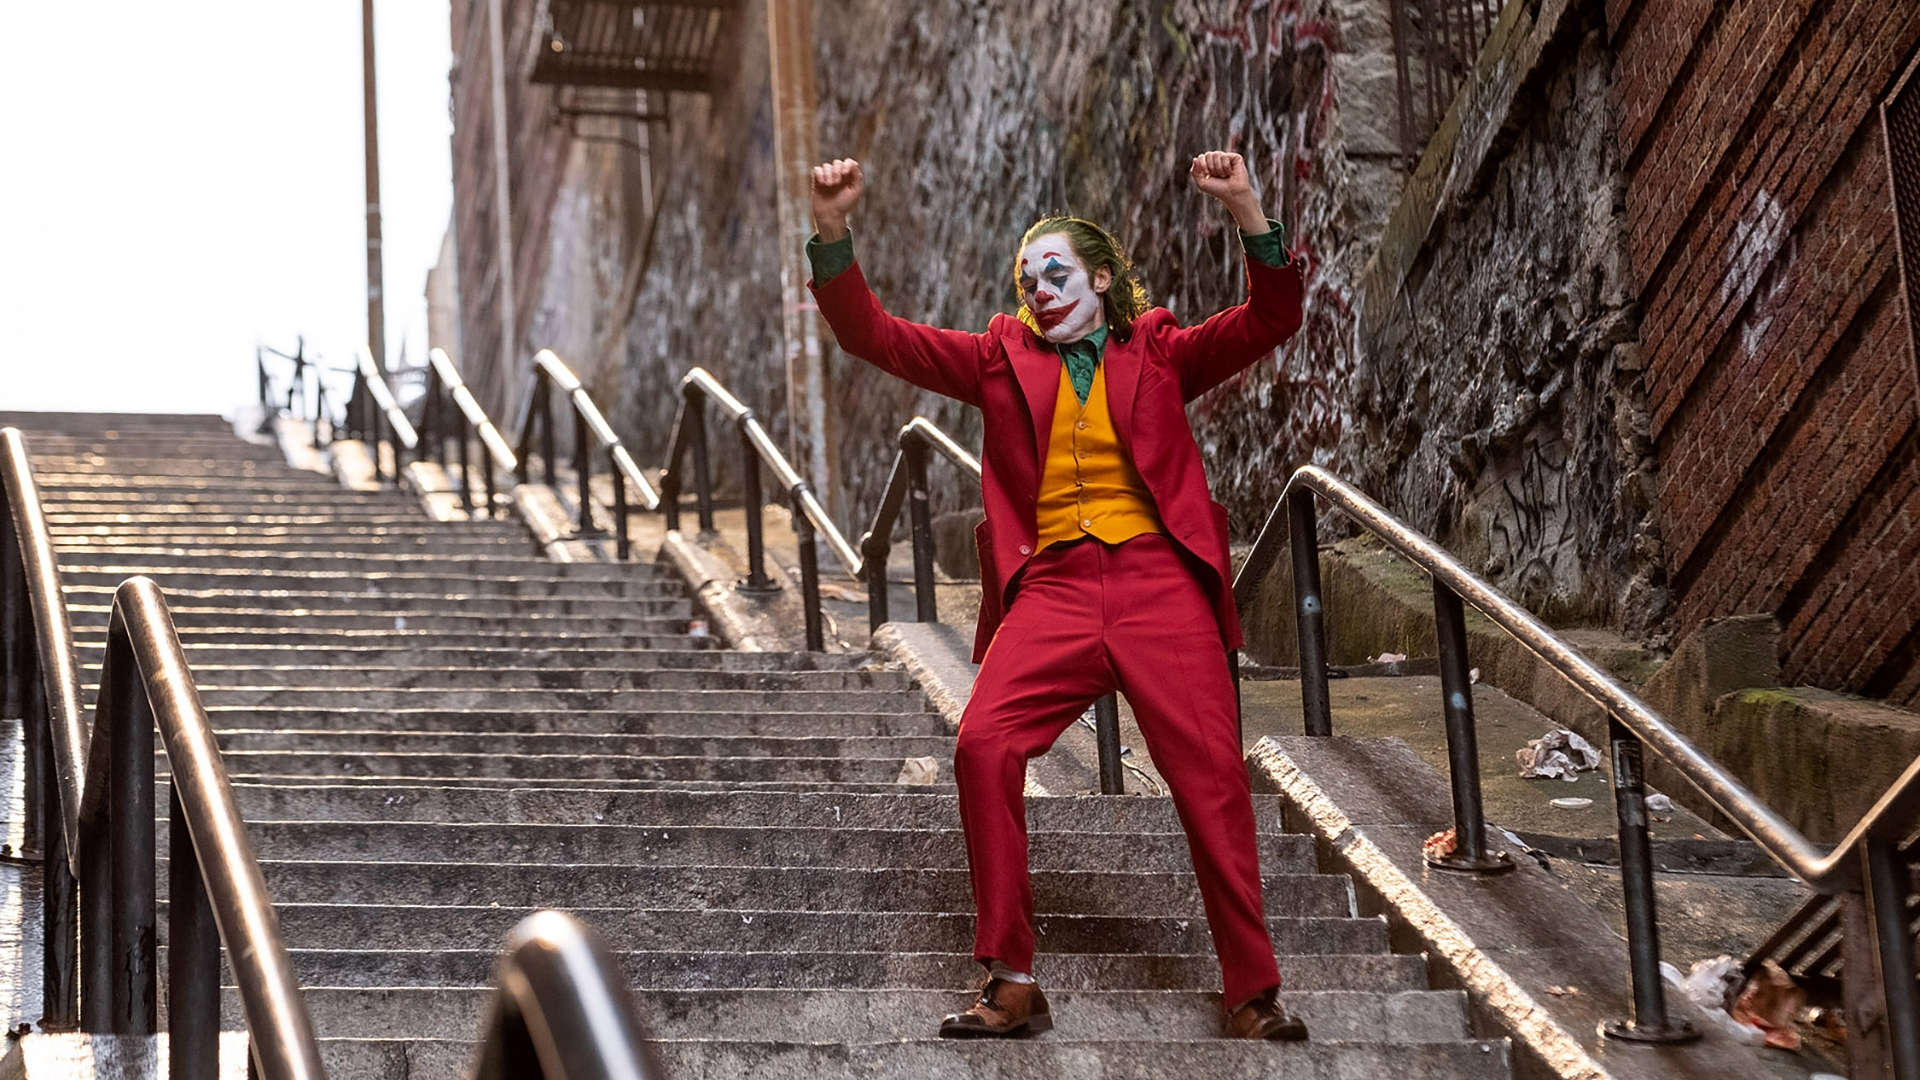 Tourists are flocking to the 'Joker' stairs. We ranked Hollywood's other famous steps.